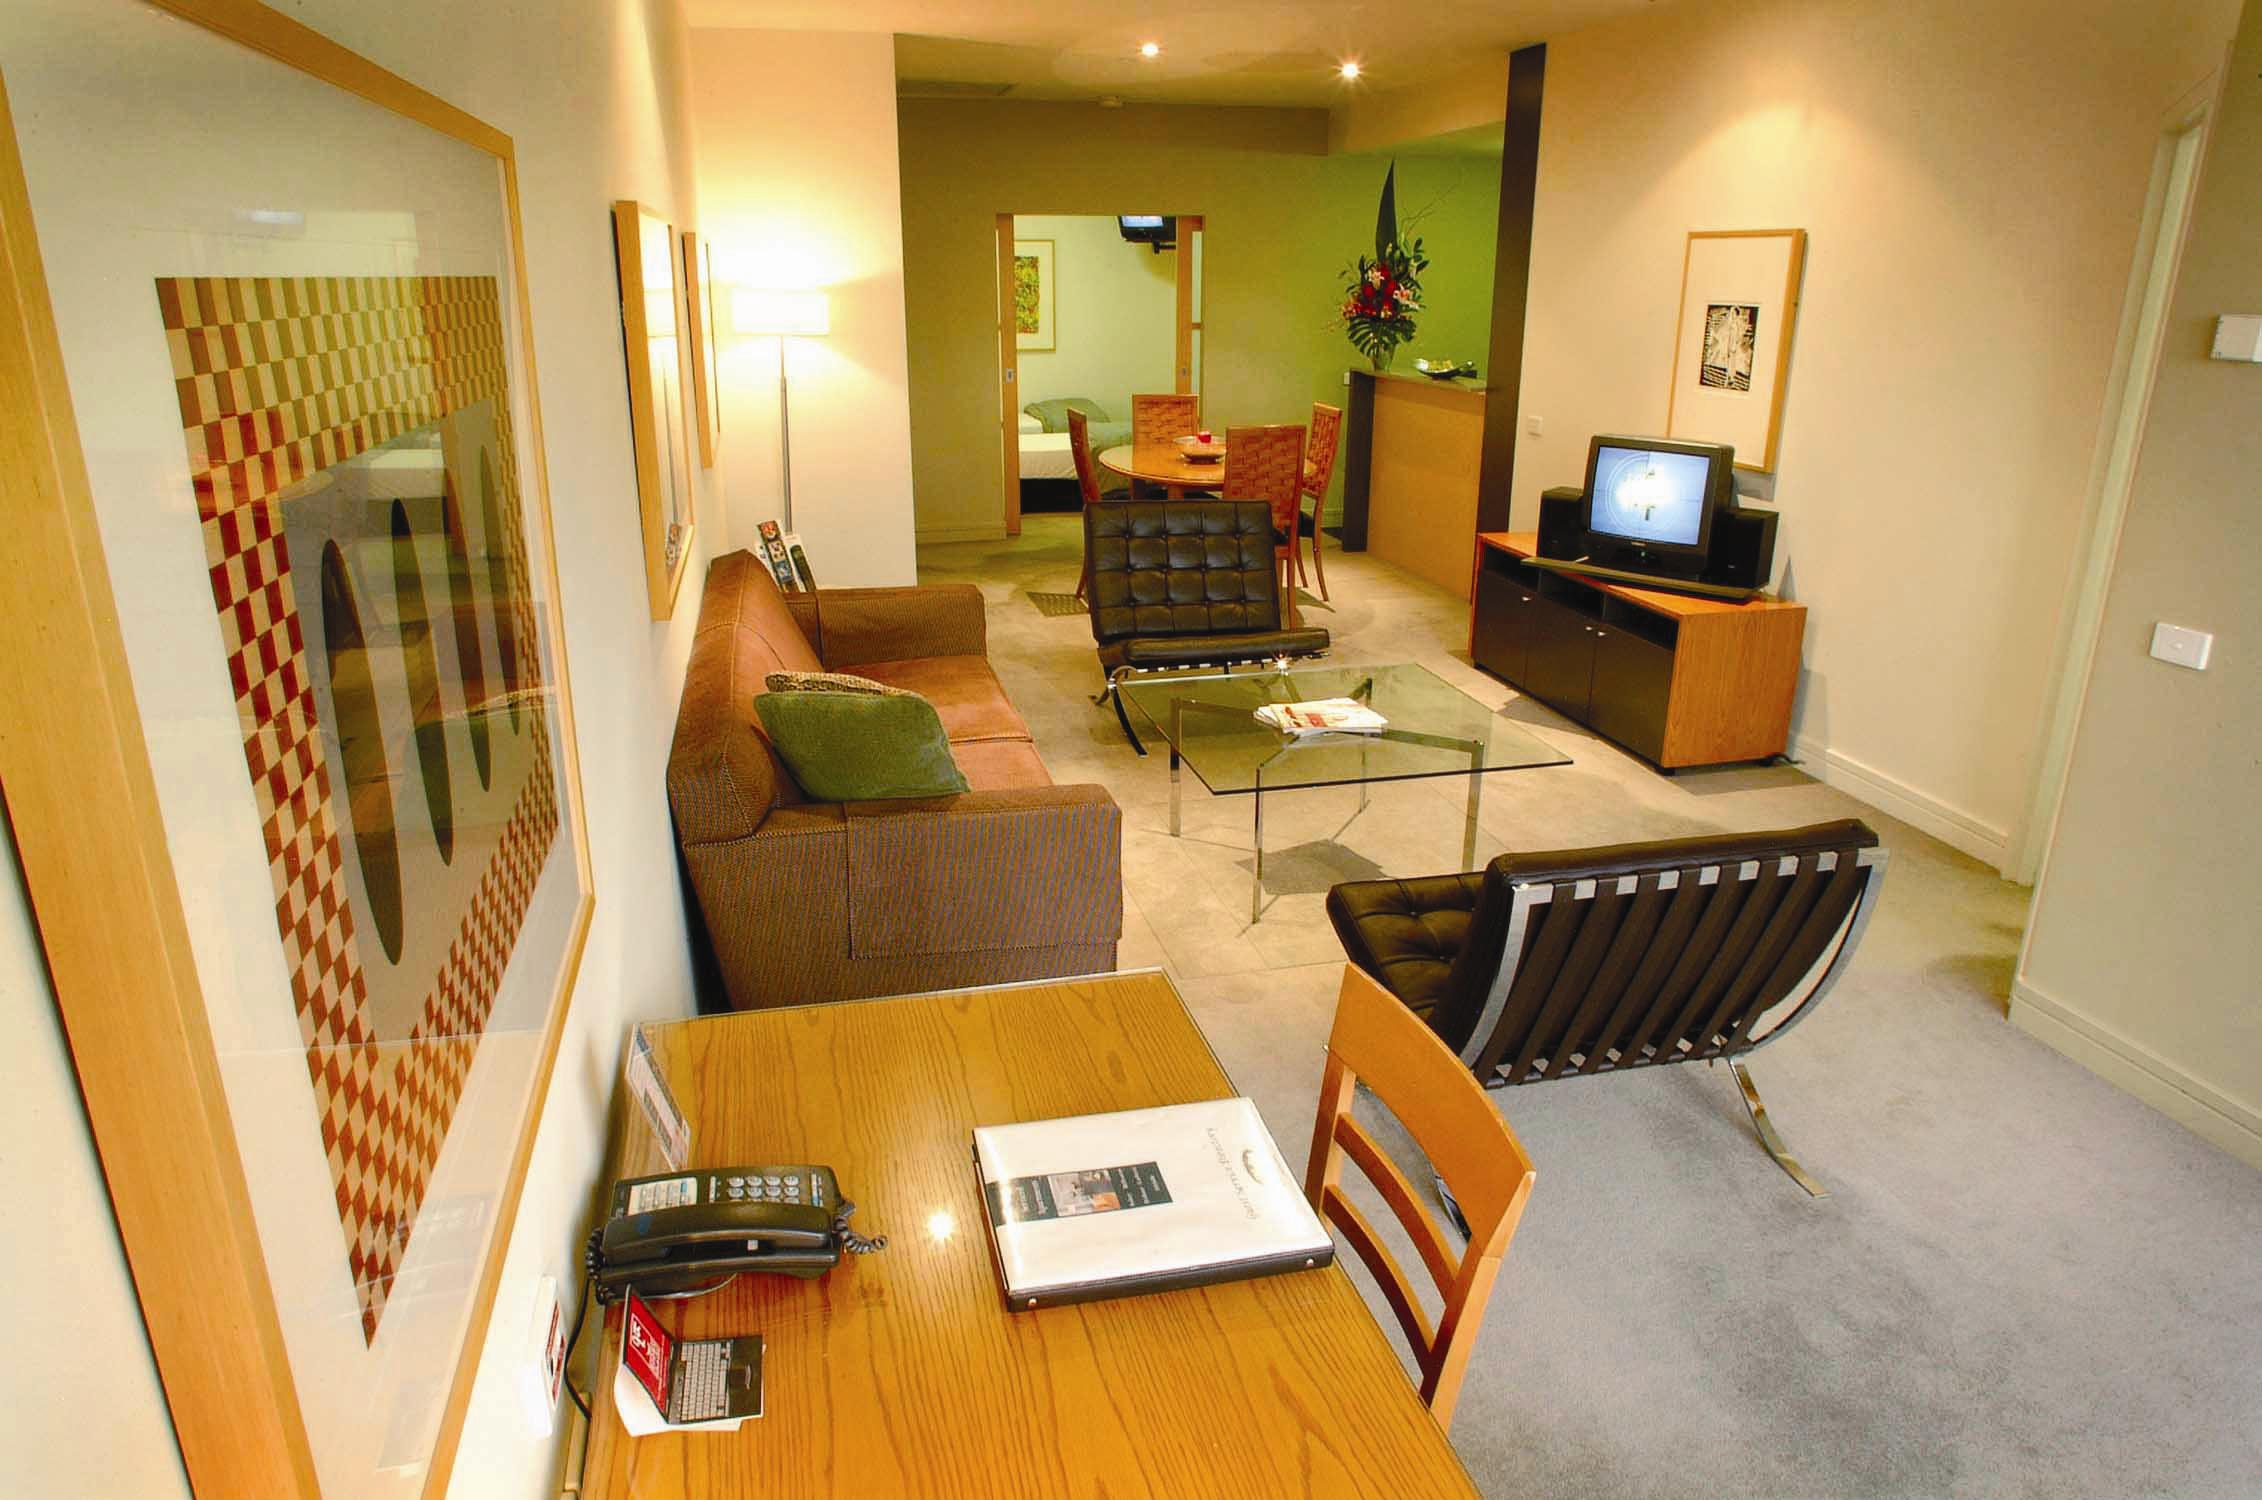 These Melbourne serviced apartments are situated in Melbourne`s CBD, 2 blocks from Bourke Street Mall. The hotel is close to the Art Gallery, Casino, Southbank and the Convention Centre. Queen Victori